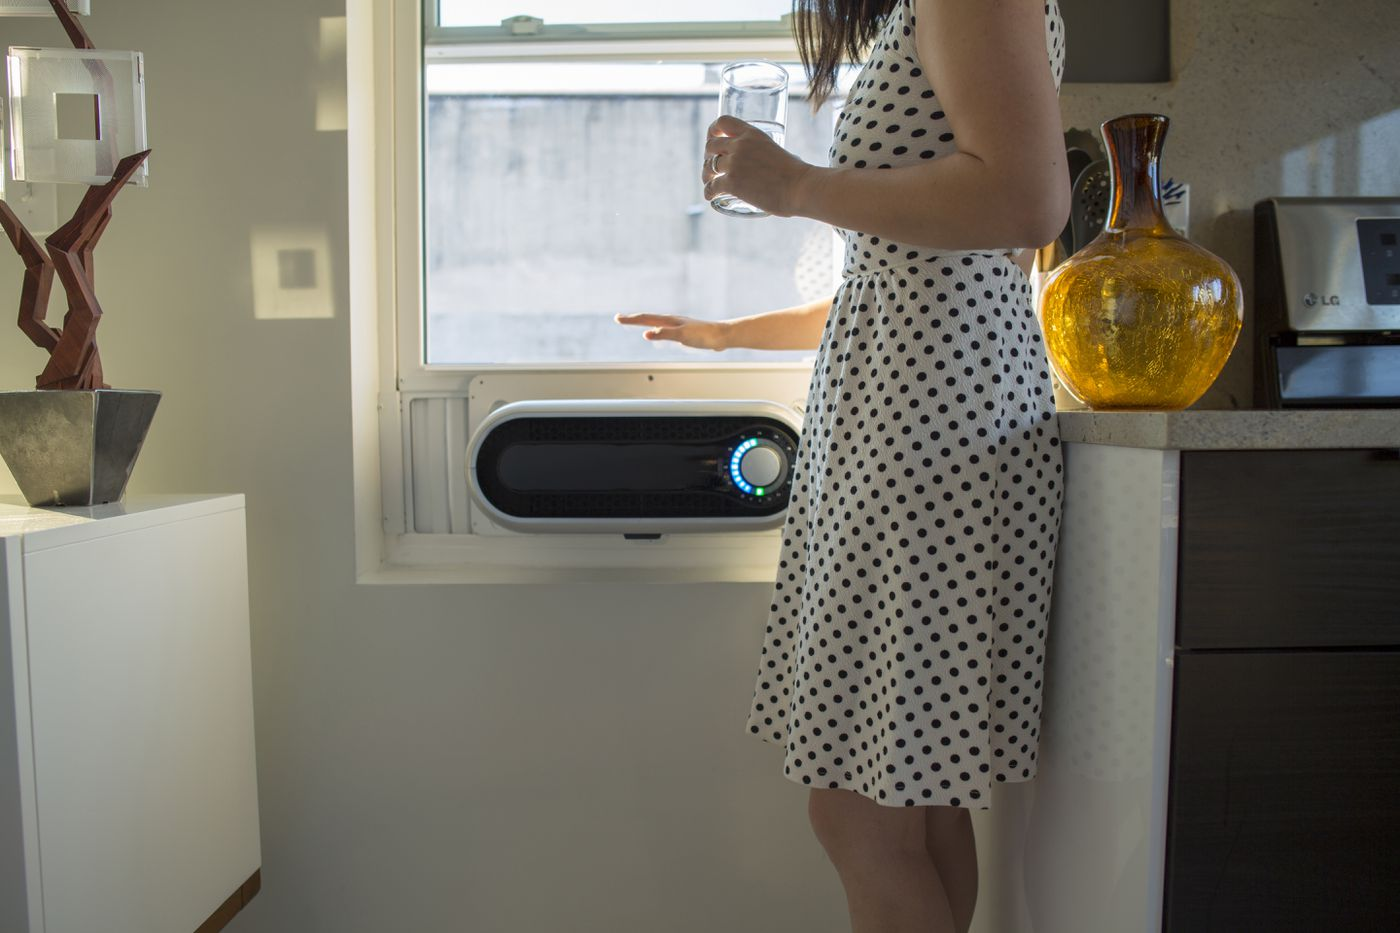 Philly start-up Kapsul is making a quieter air conditioner thanks to $2.3 million from crowdfunding